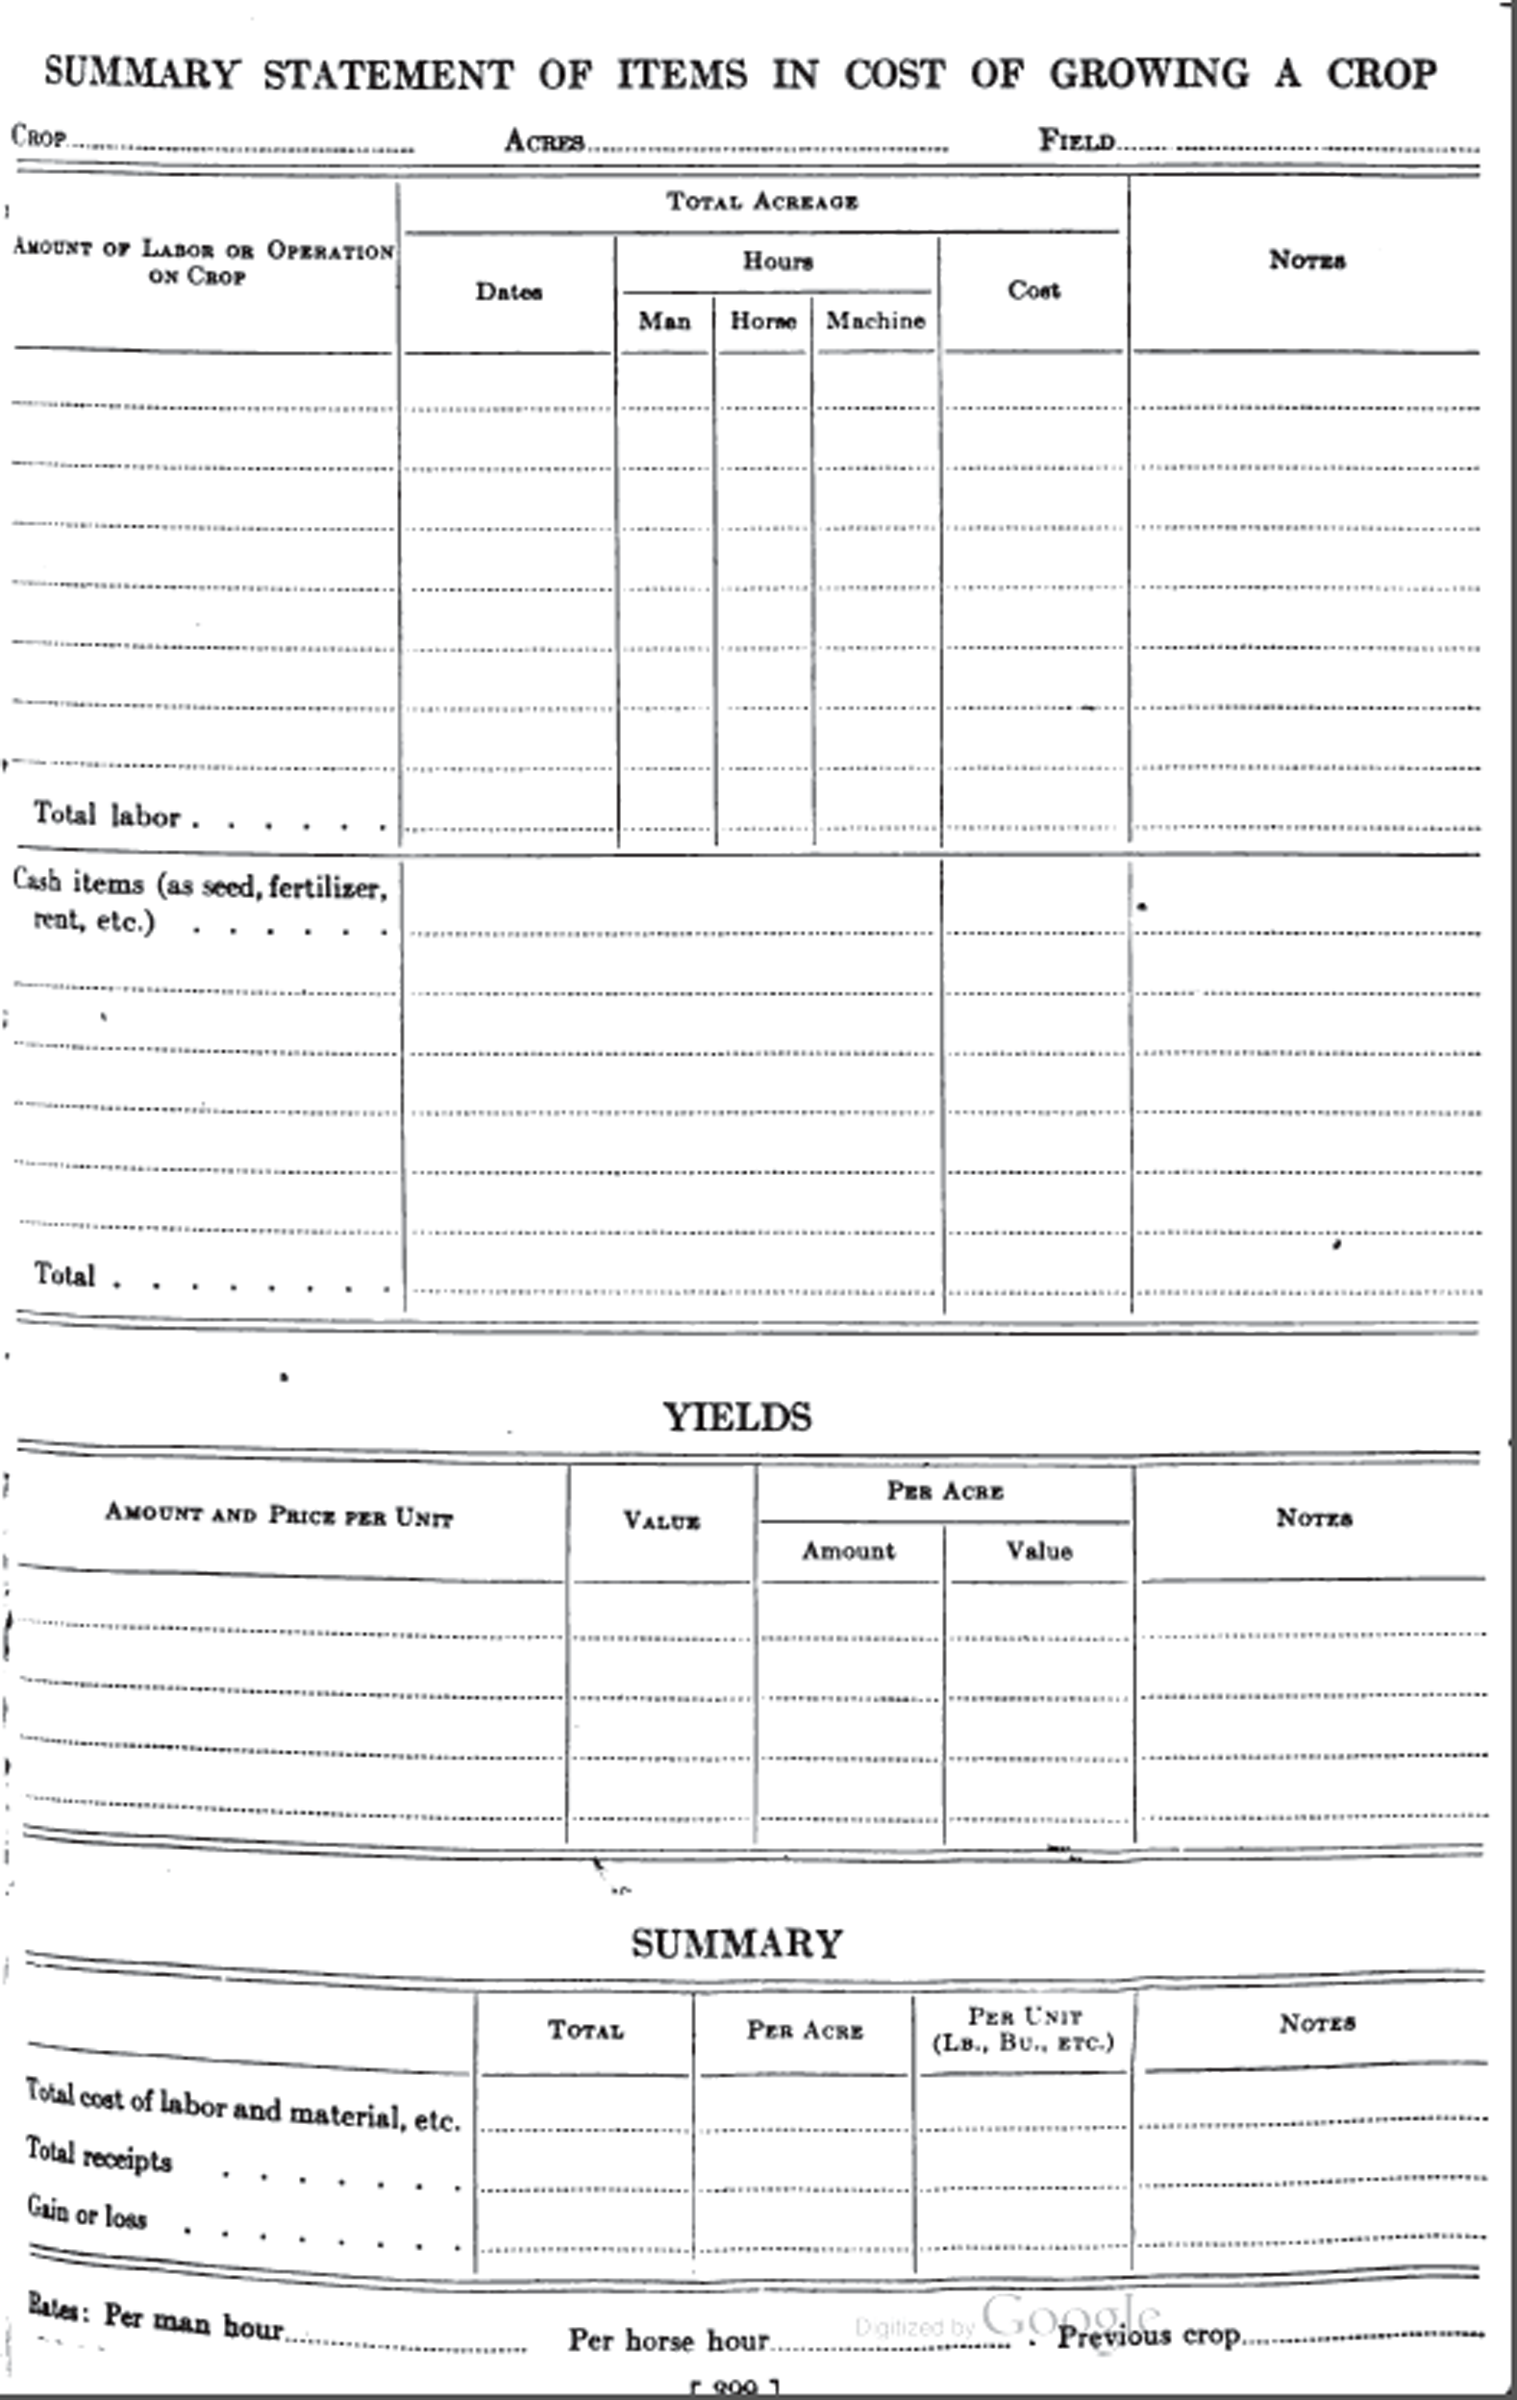 Example page from a crop record book used to track costs, work hours, acreage, crop yields.